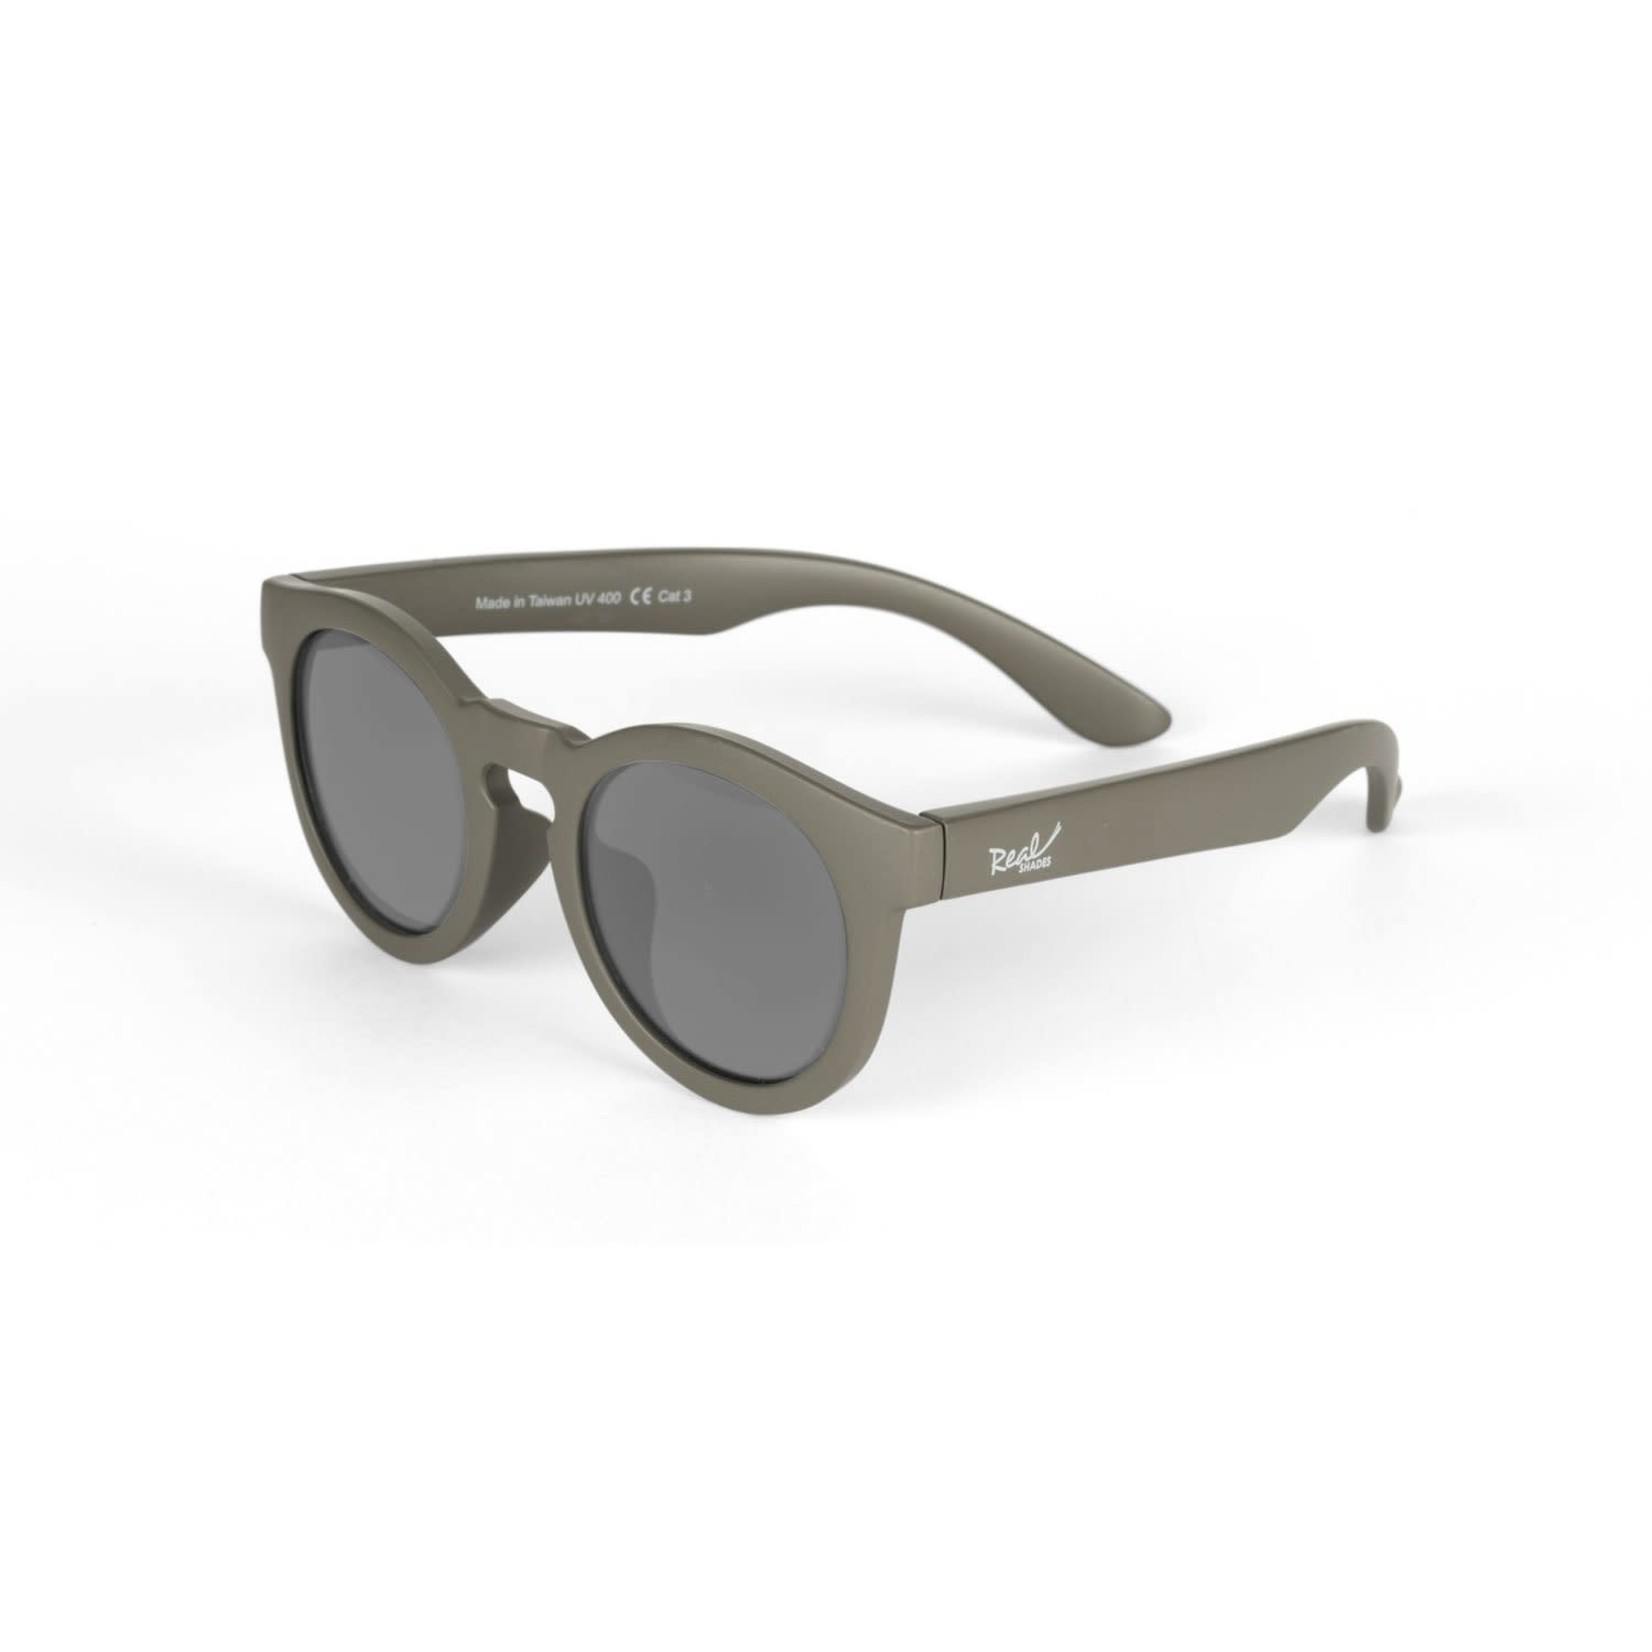 Real Shades Youth Chill Flexible Frame Sunglasses Military Olive